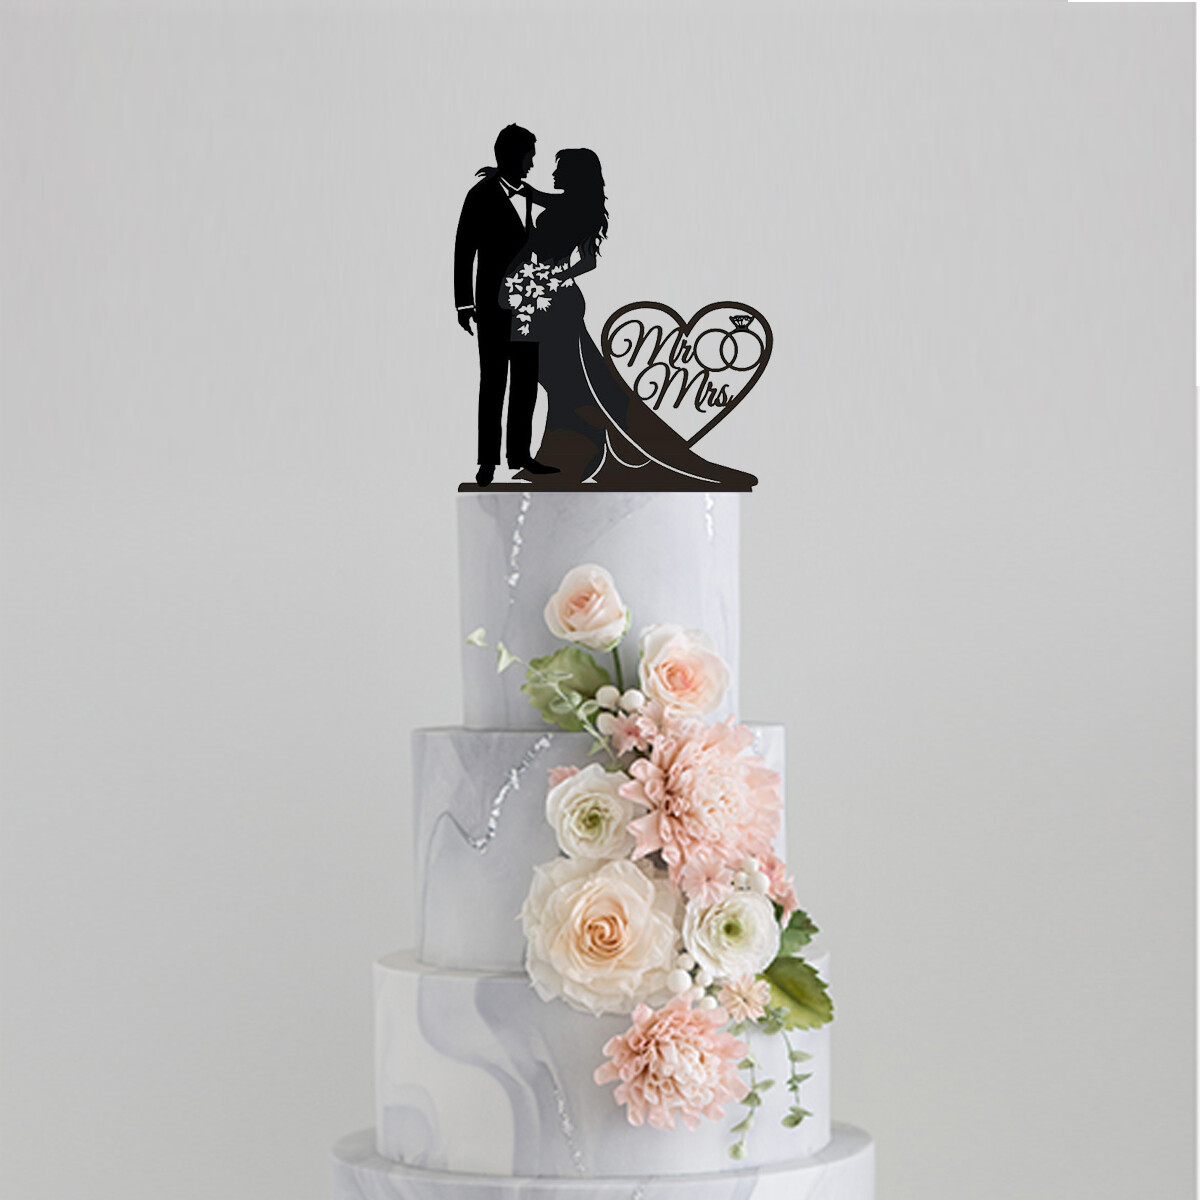 Mr & Mrs Couple Cake Topper